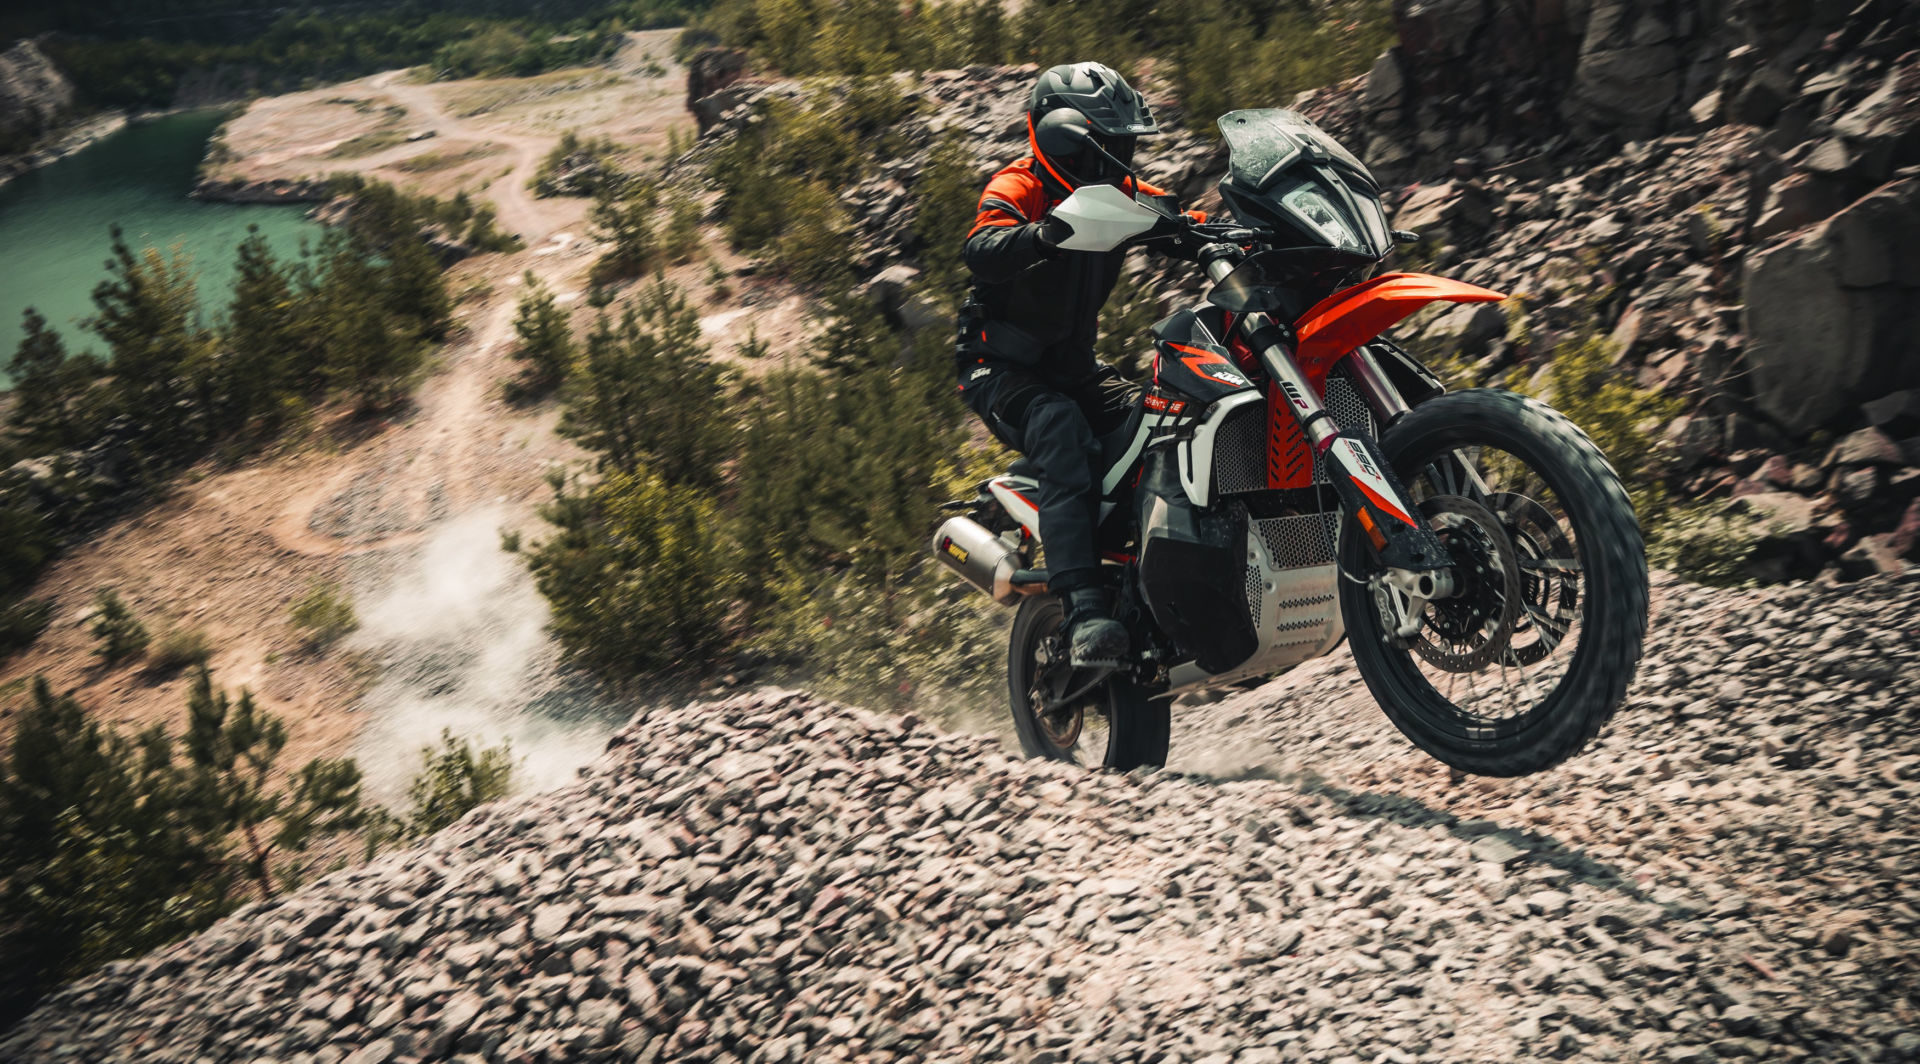 A 2021 KTM 890 Adventure R in action. Photo by Sebas Romero, courtesy KTM.